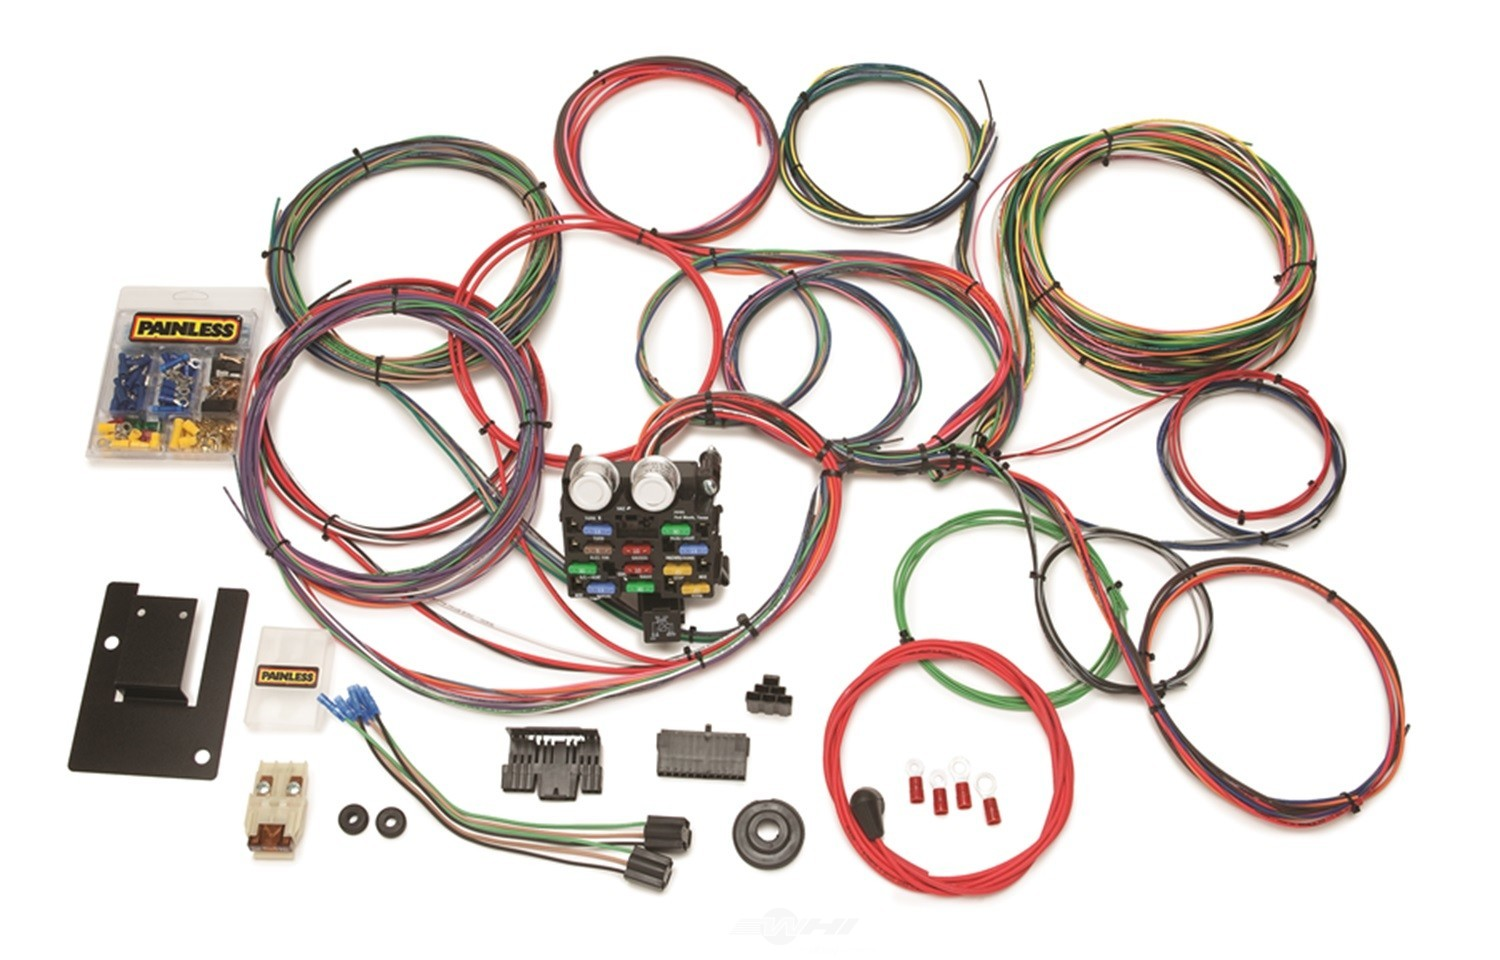 chevy wire harness 1995 chassis wire harness painless wiring 20107 fits 55-57 ...